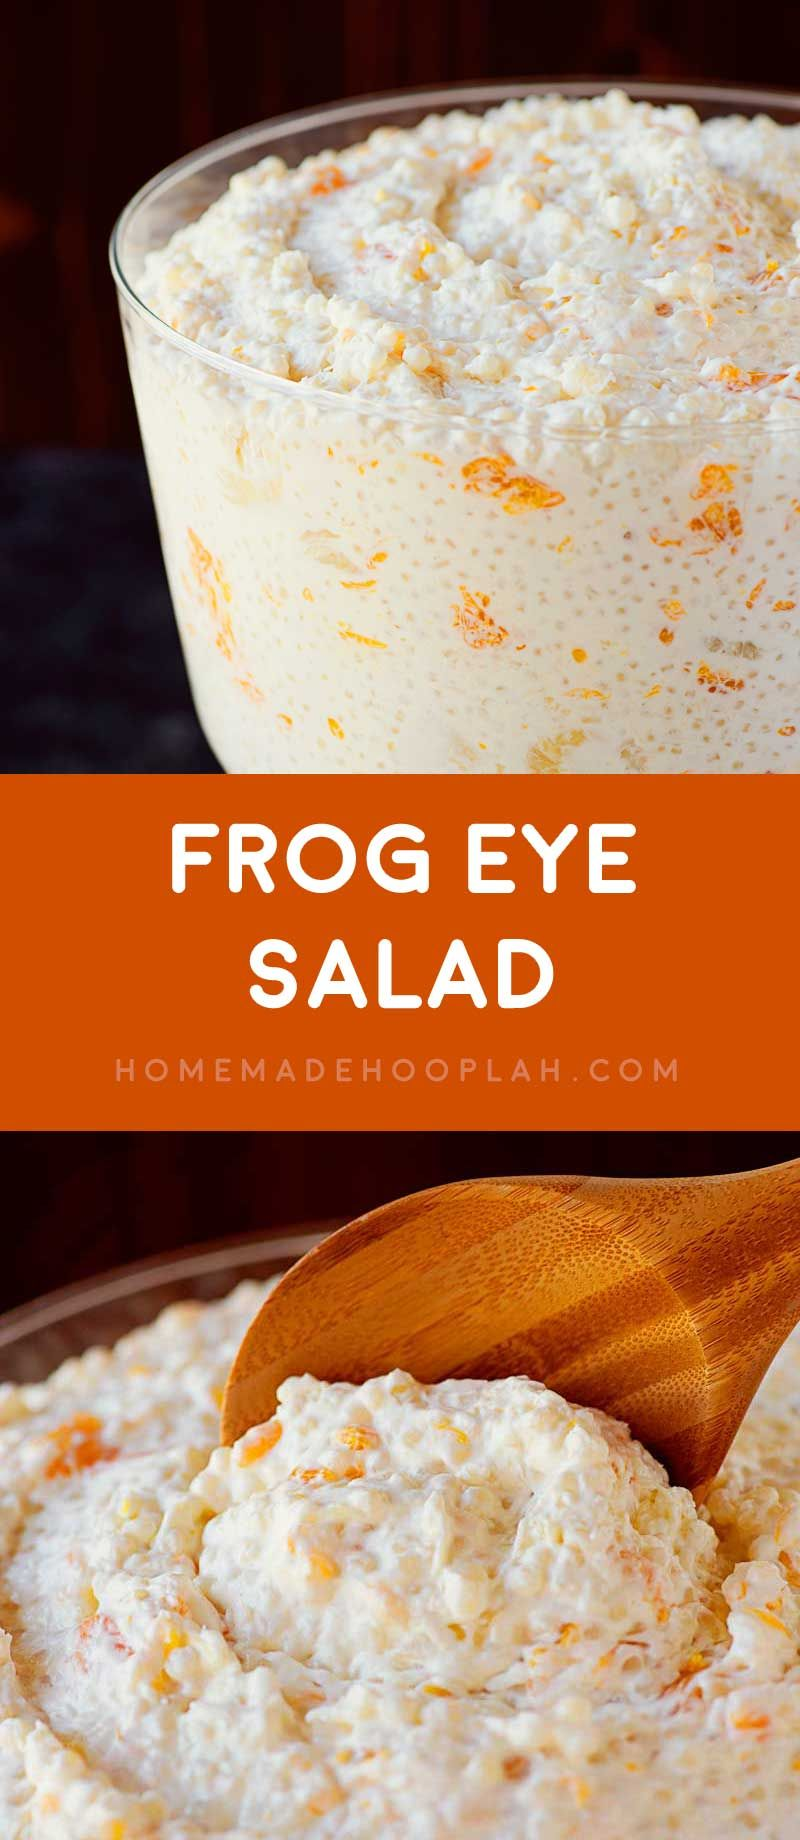 Frog Eye Salad! A creative fruit salad that combines savory acini de pepe pasta, sweet fruit, and a creamy fruit juice custard. A unique treat for all parties or holidays! | HomemadeHooplah.com #fruitsalad